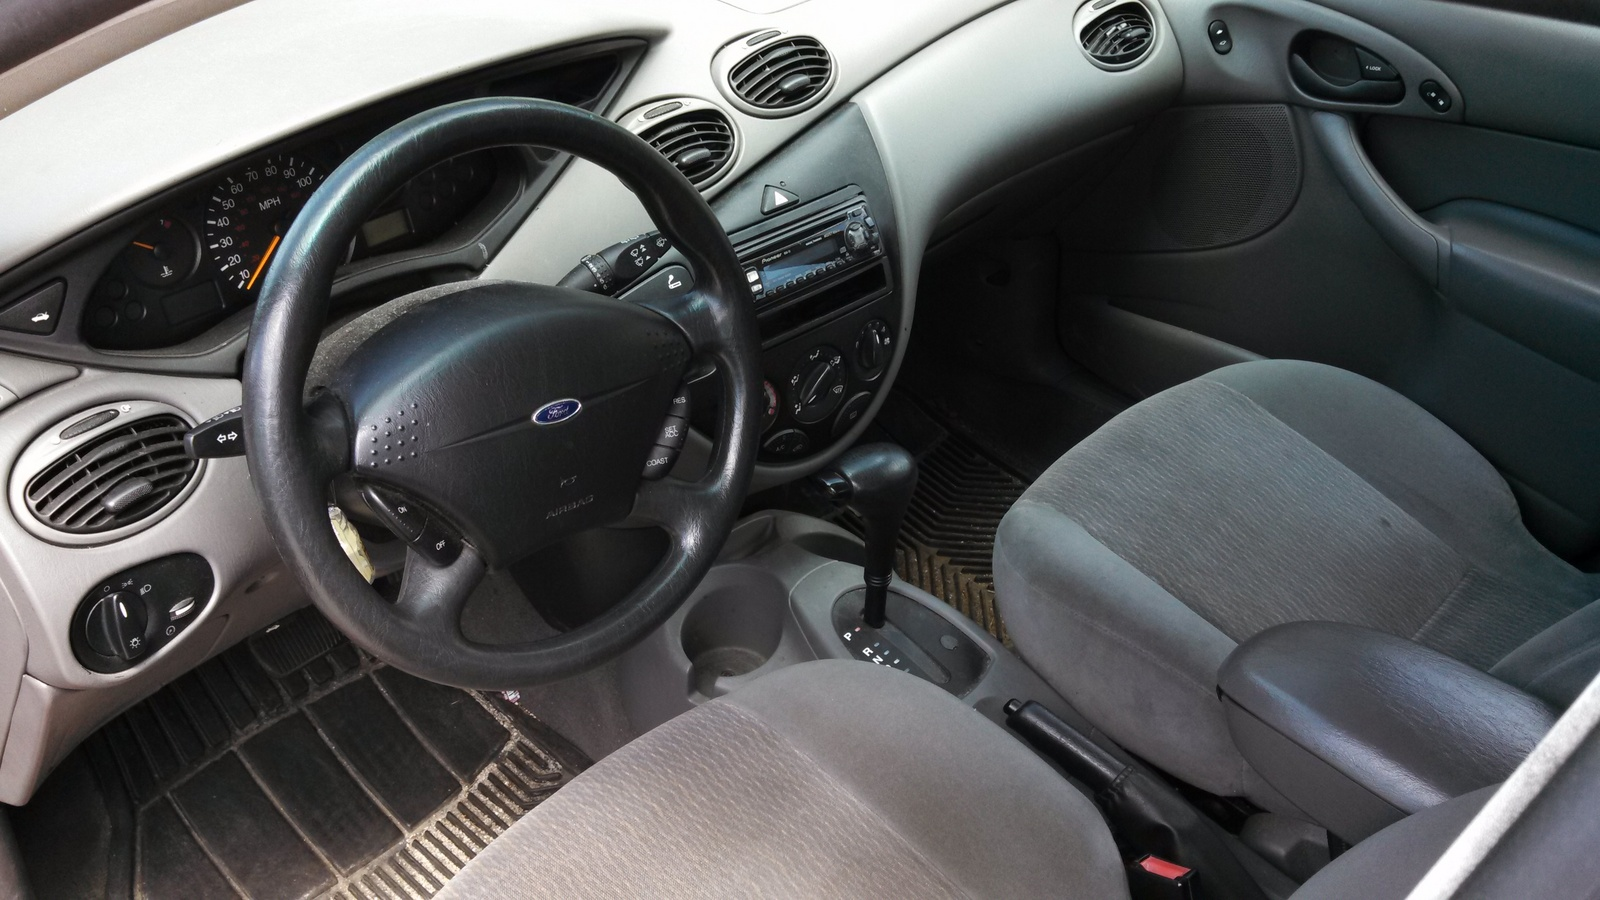 2000 Ford Focus Wagon Accessories